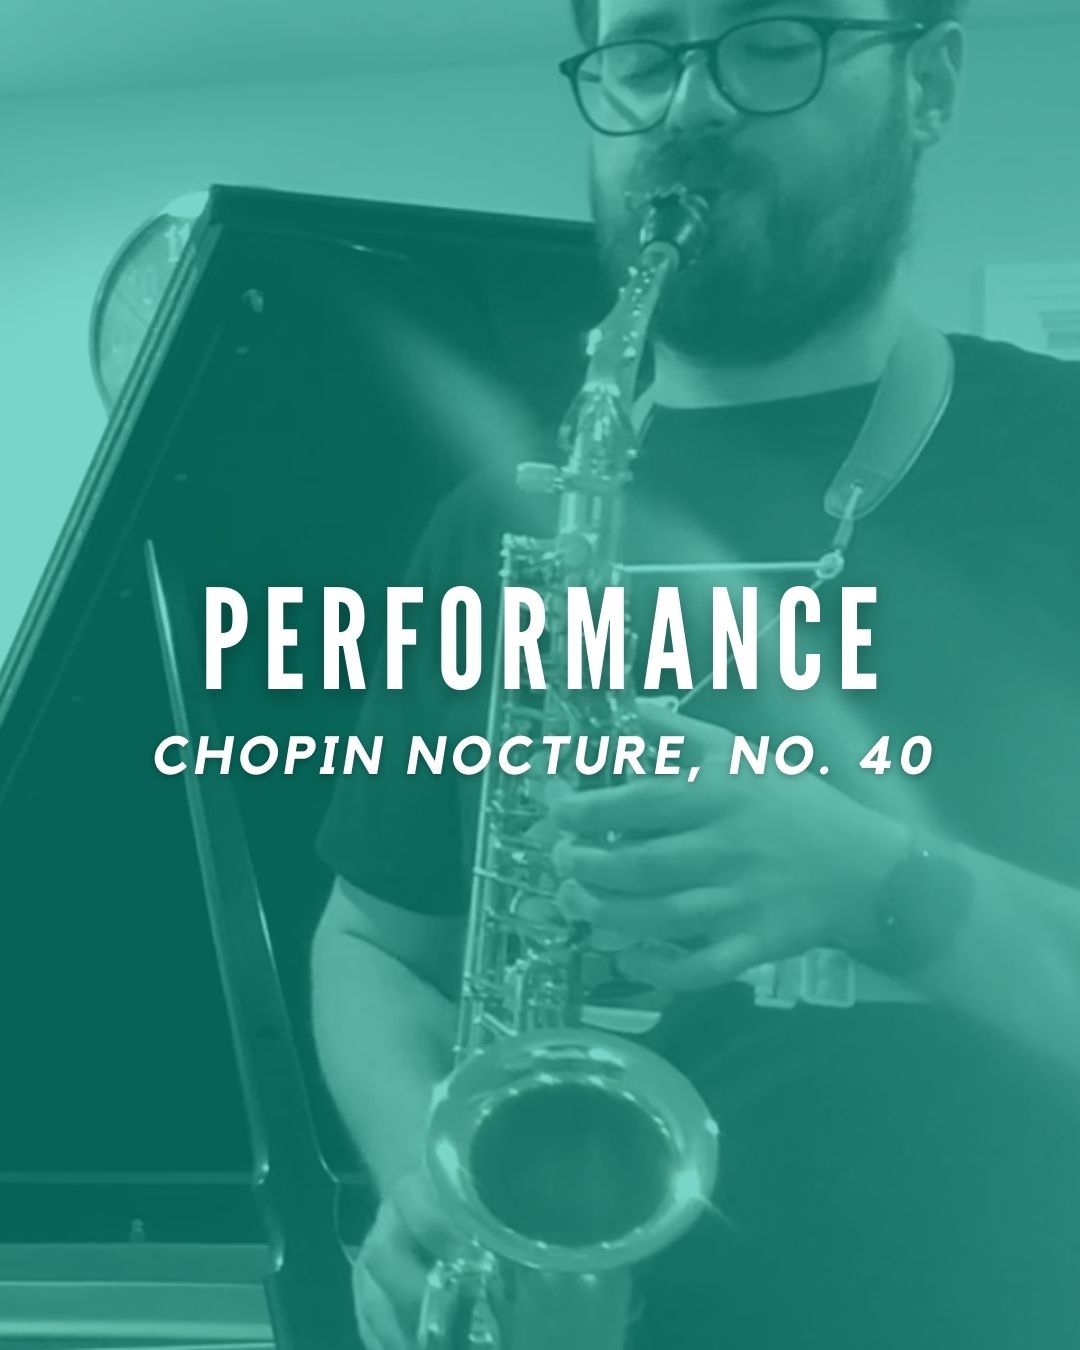 Chopin Nocturne, No. 20